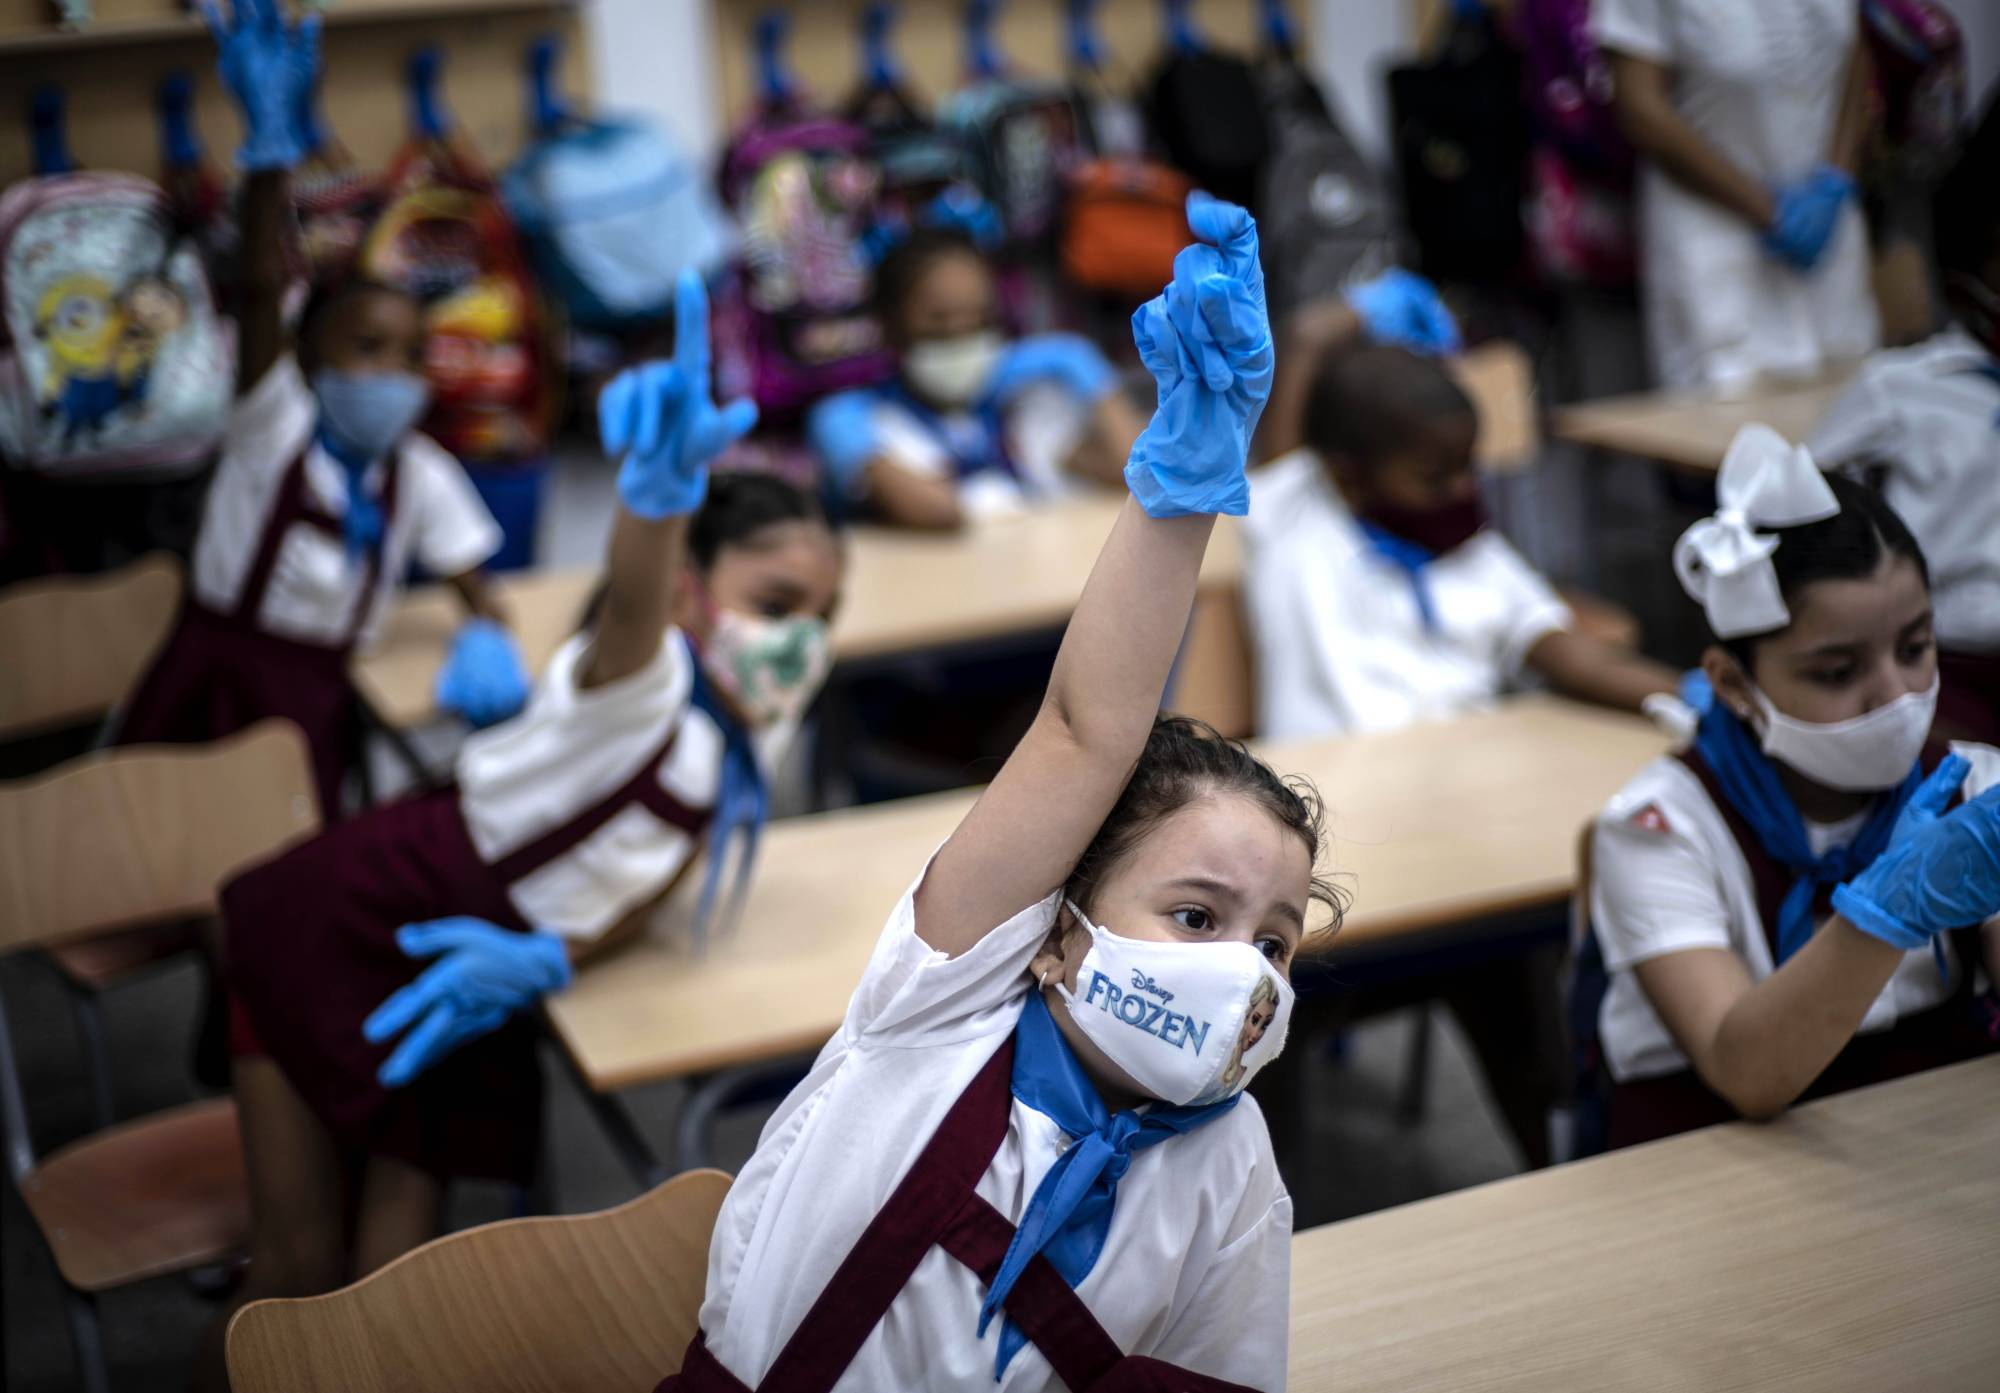 The ability of children to spread the virus is a matter of debate, and each country has dealt with its school students in different ways.   AP